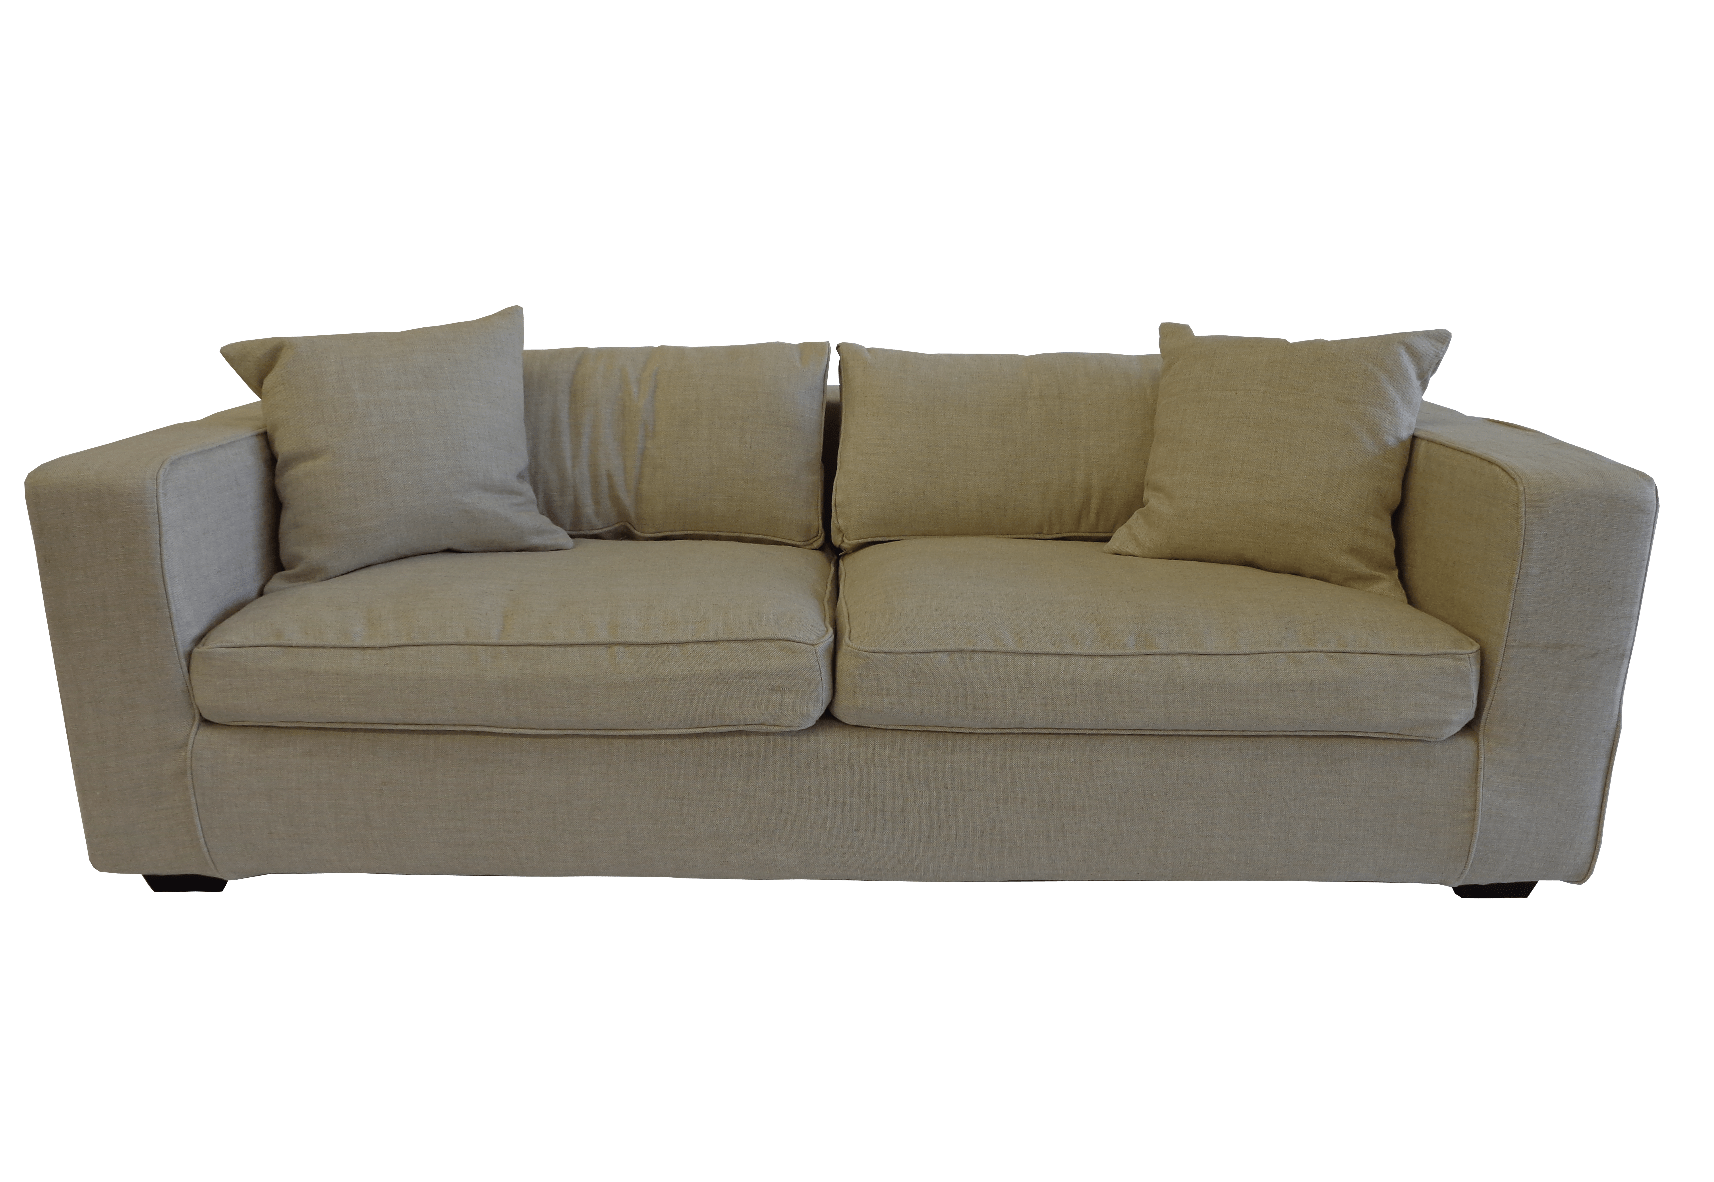 Sofa Beds Online Nz Products Archive Living Edge